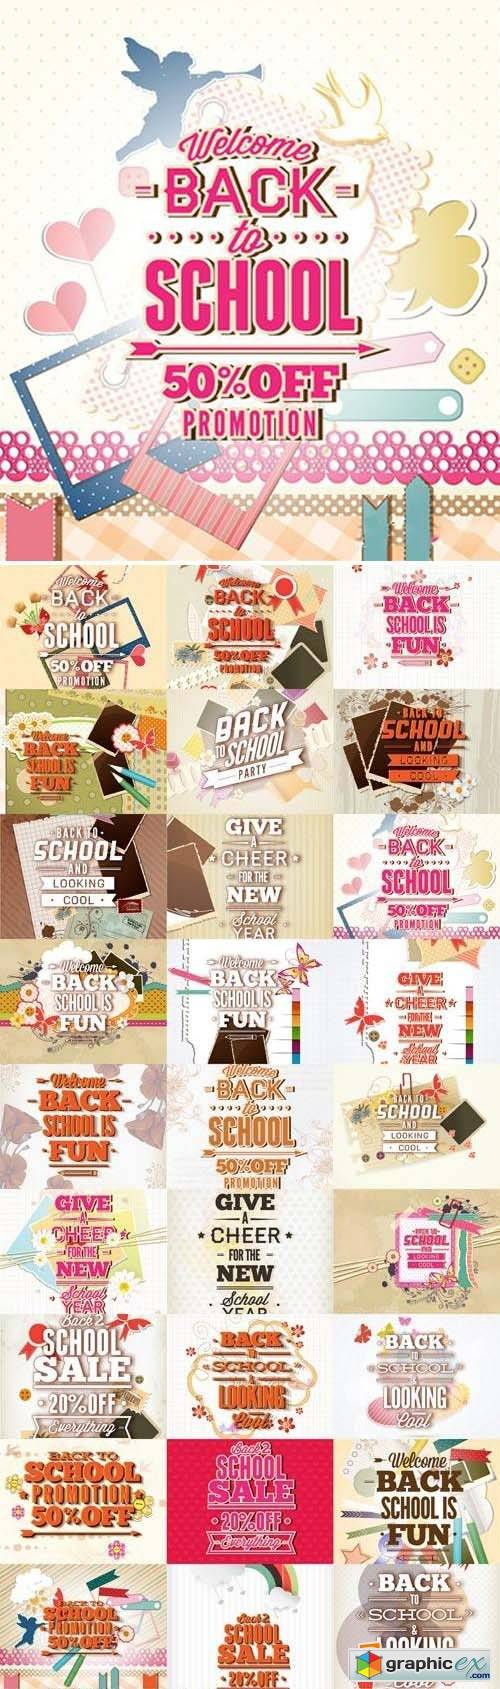 Back to School Promotion Vectors Set 30xEPS